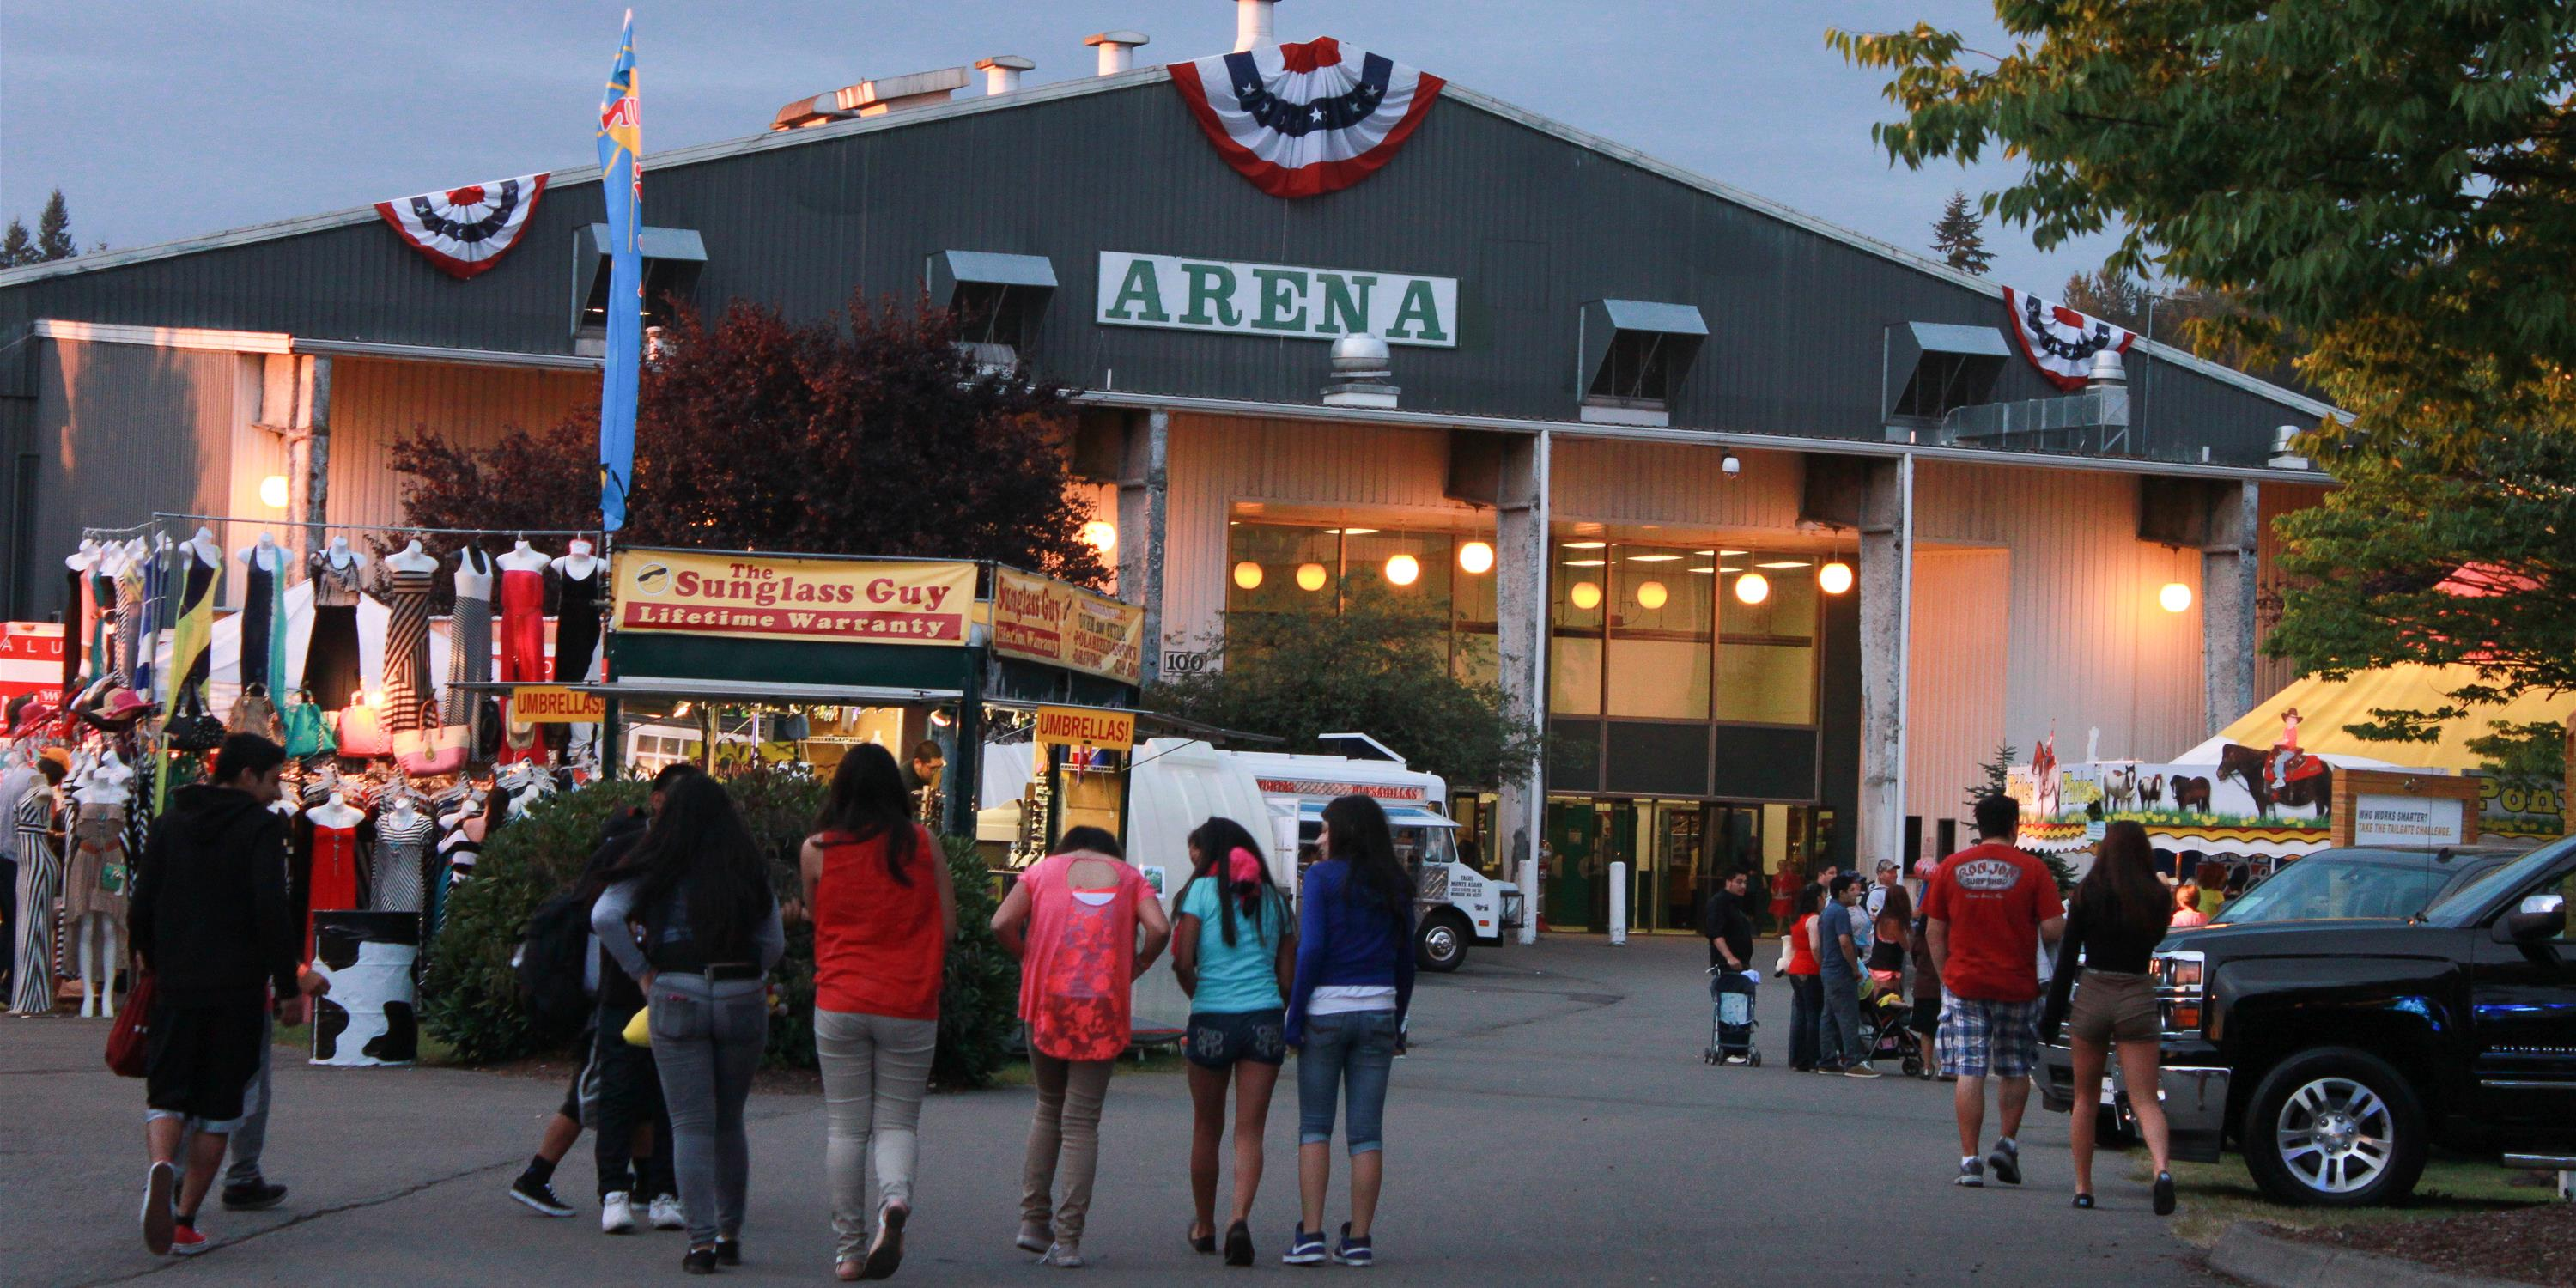 Equestrian Park Entrance Sign Crowd At An Arena